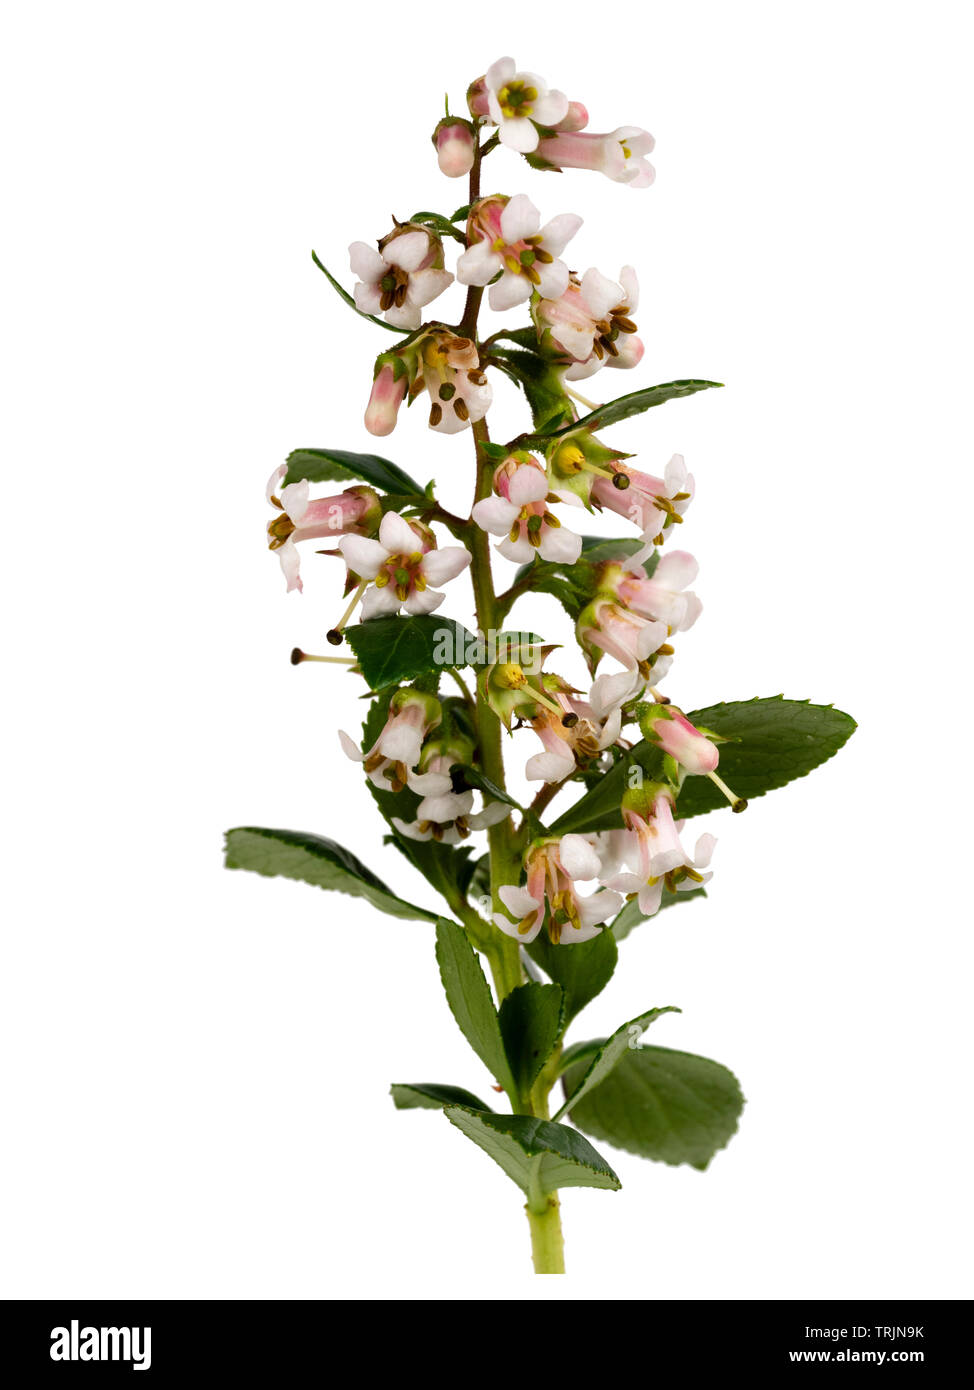 Summer panicle of the pale pink and white flowered evergreen hedging shrub, Escallonia 'Apple Blossom' on a white background - Stock Image